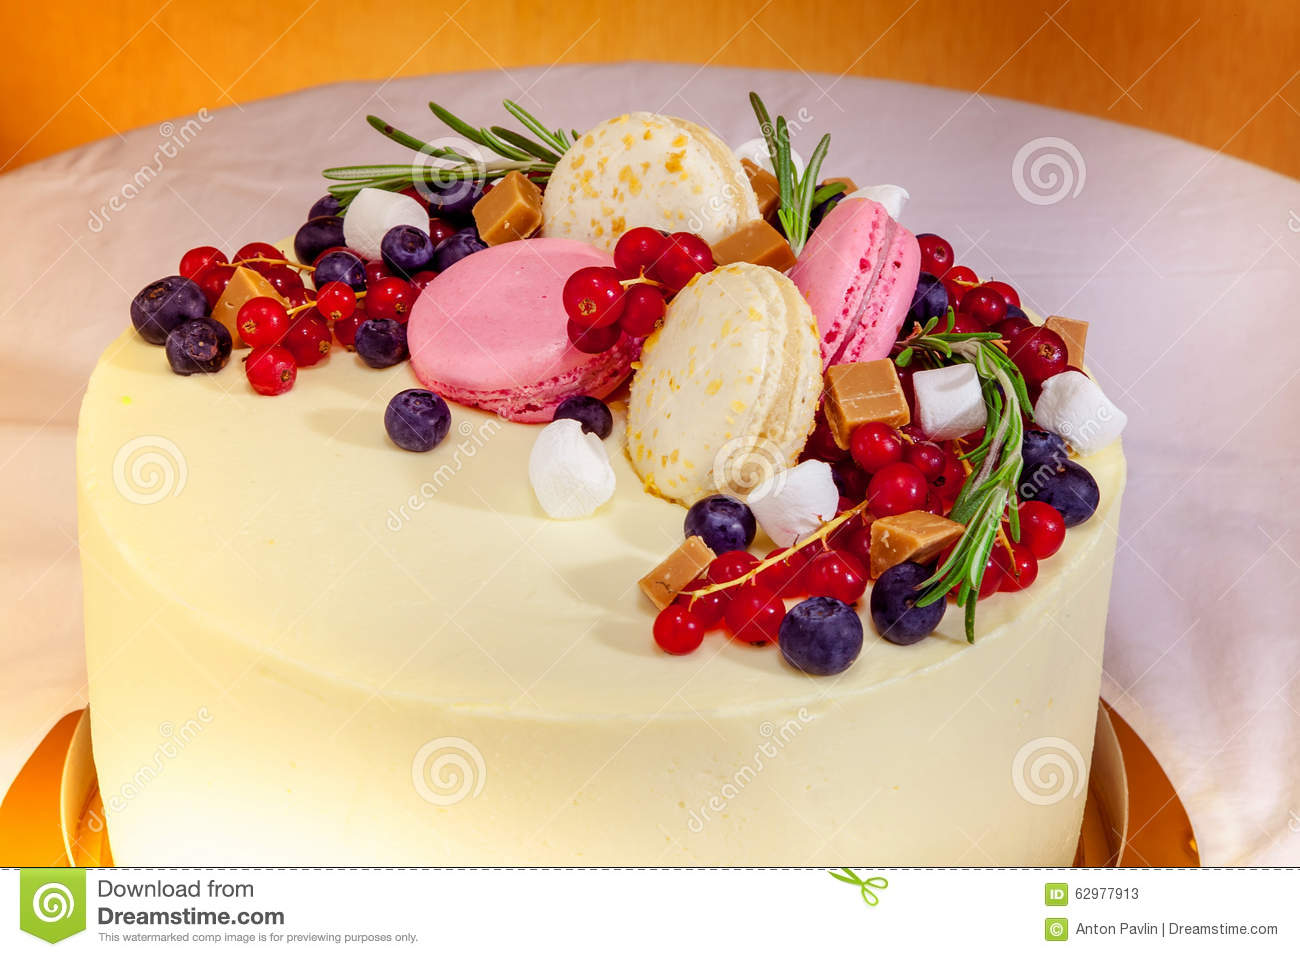 Birthday Cake With Cream Fresh Fruit And Berries Slide